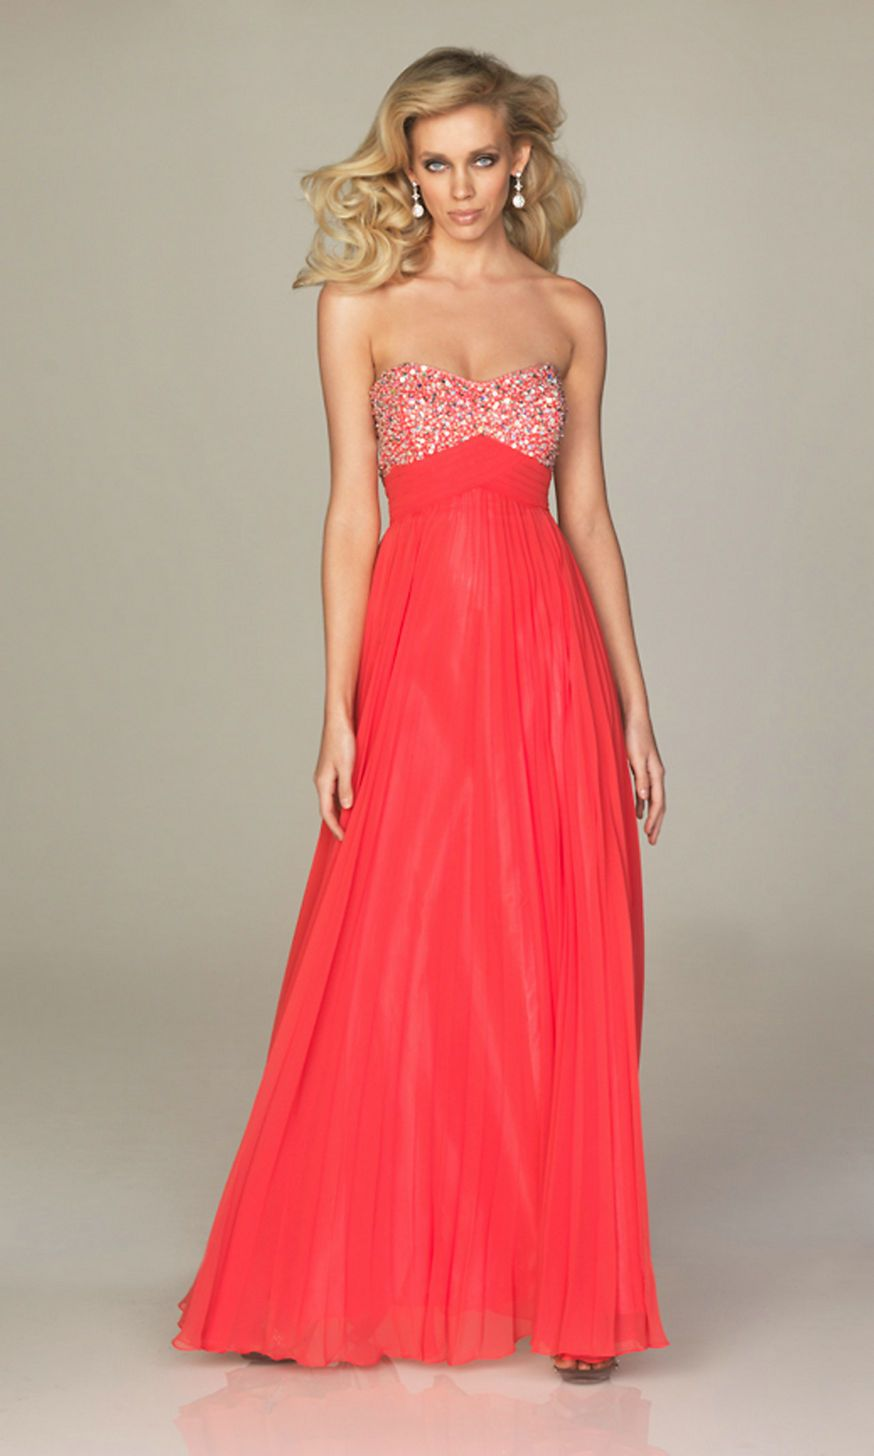 1000  images about Red Prom Dresses on Pinterest - Prom dresses ...